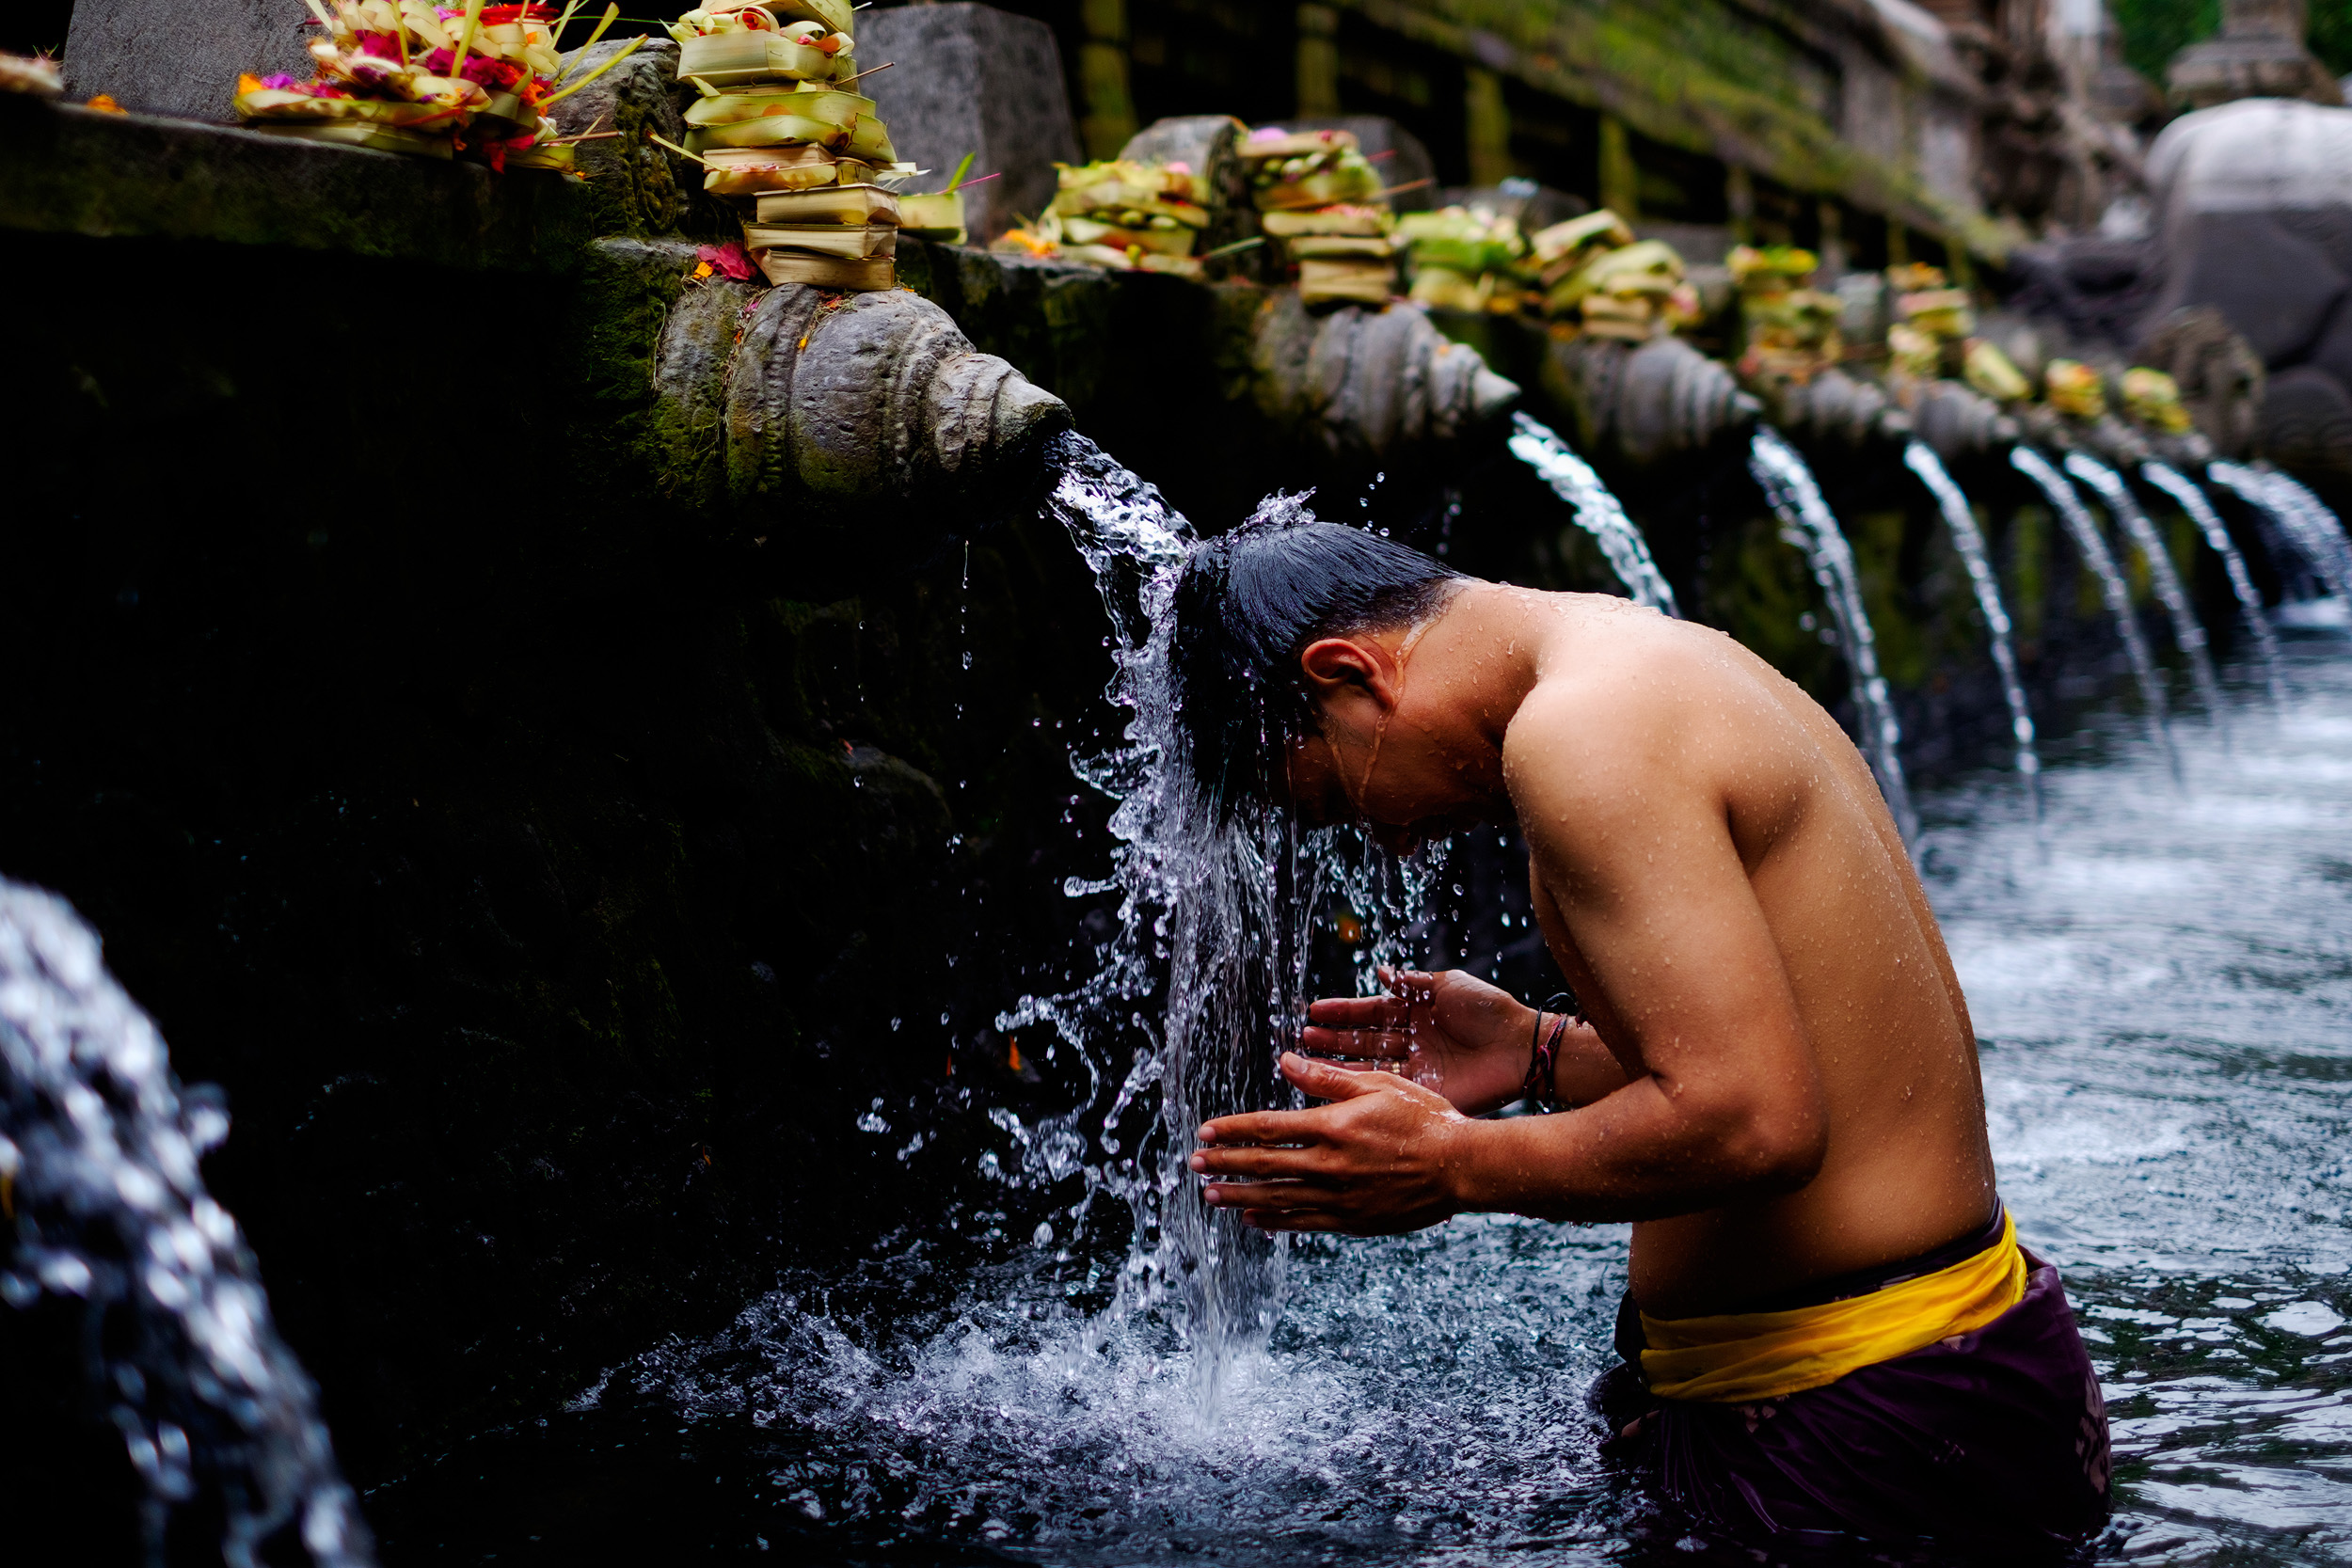 Tirta Empul   People travel from all over Bali to bathe and sanctify themselves in the spiritual waters of Tirta Empul. According to legend, the God Indra pierced the earth to create a fountain of healing waters after the land had been poisoned. People bathe and leave offerings on top of each fountain as they work there way down the pool.  It's a wonderful place to spend a few hours in the morning. I had to put on a sarong and get into the water to get this shot.